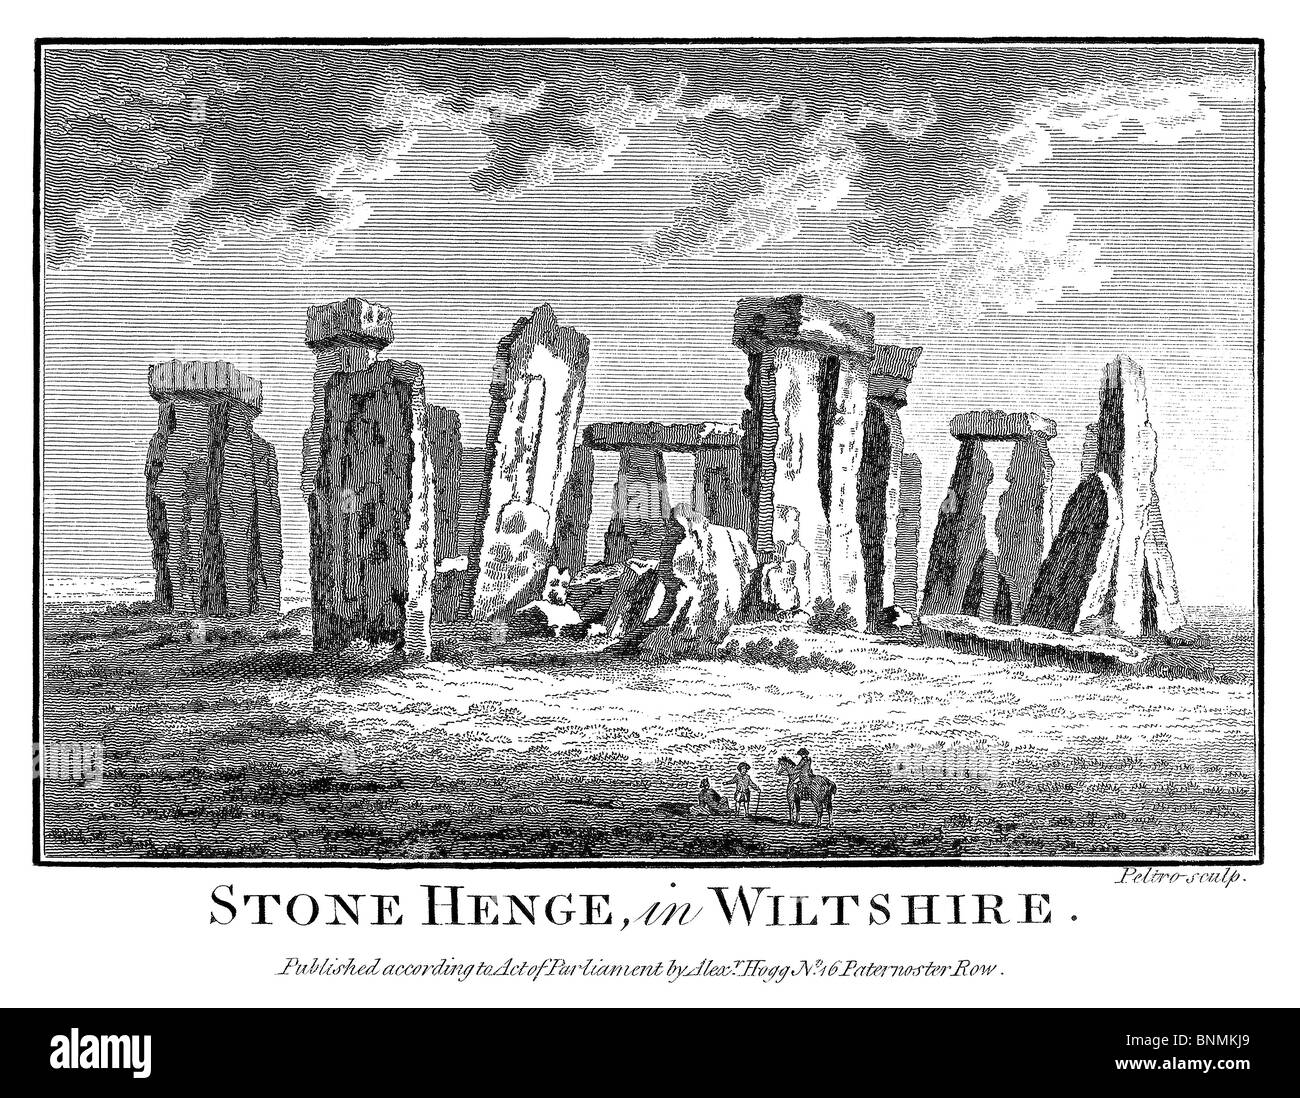 Stone Henge, in Wiltshire, published by Alexander Hogg, London, 1786 by Henry Boswell. - Stock Image